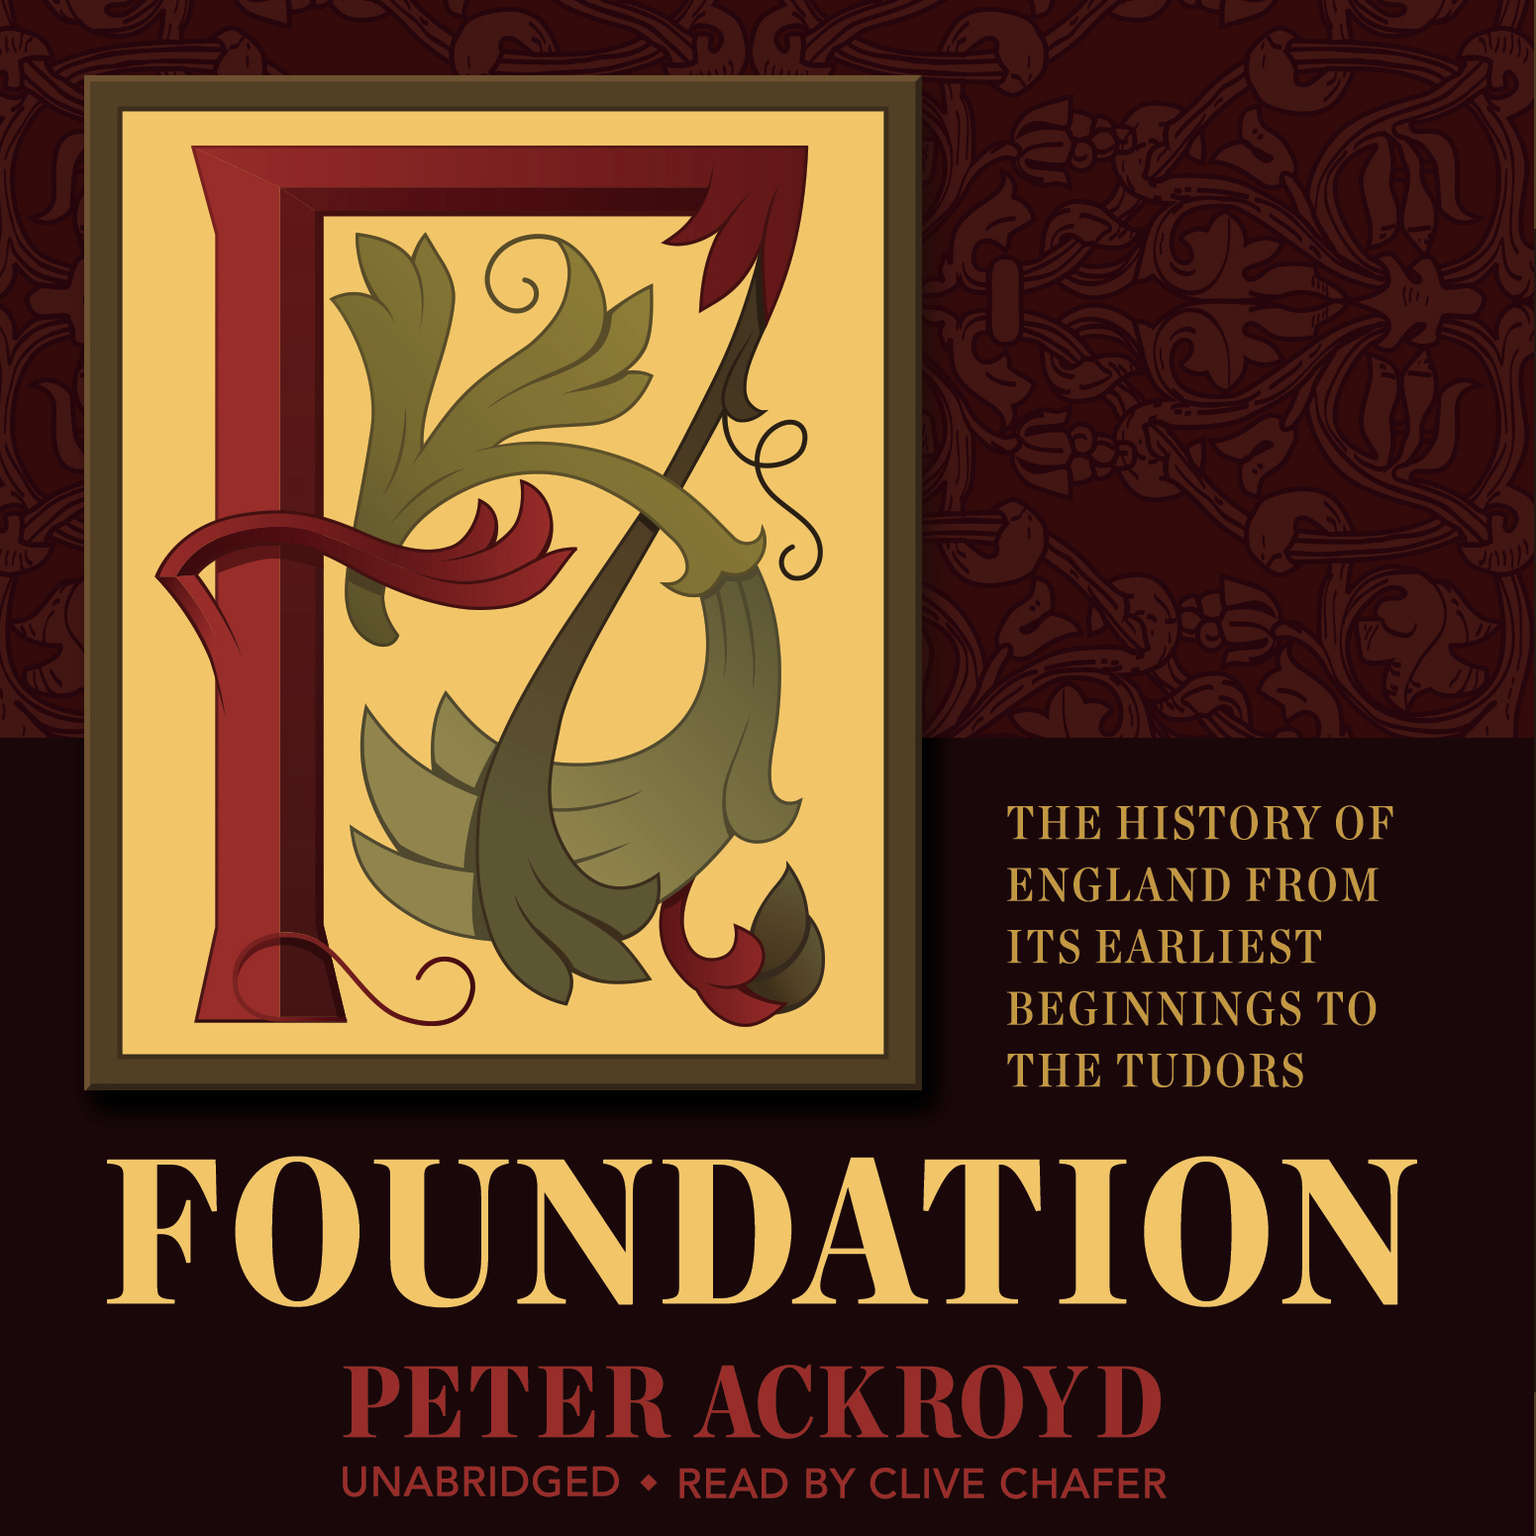 Foundation: The History of England from Its Earliest Beginnings to the Tudors Audiobook, by Peter Ackroyd